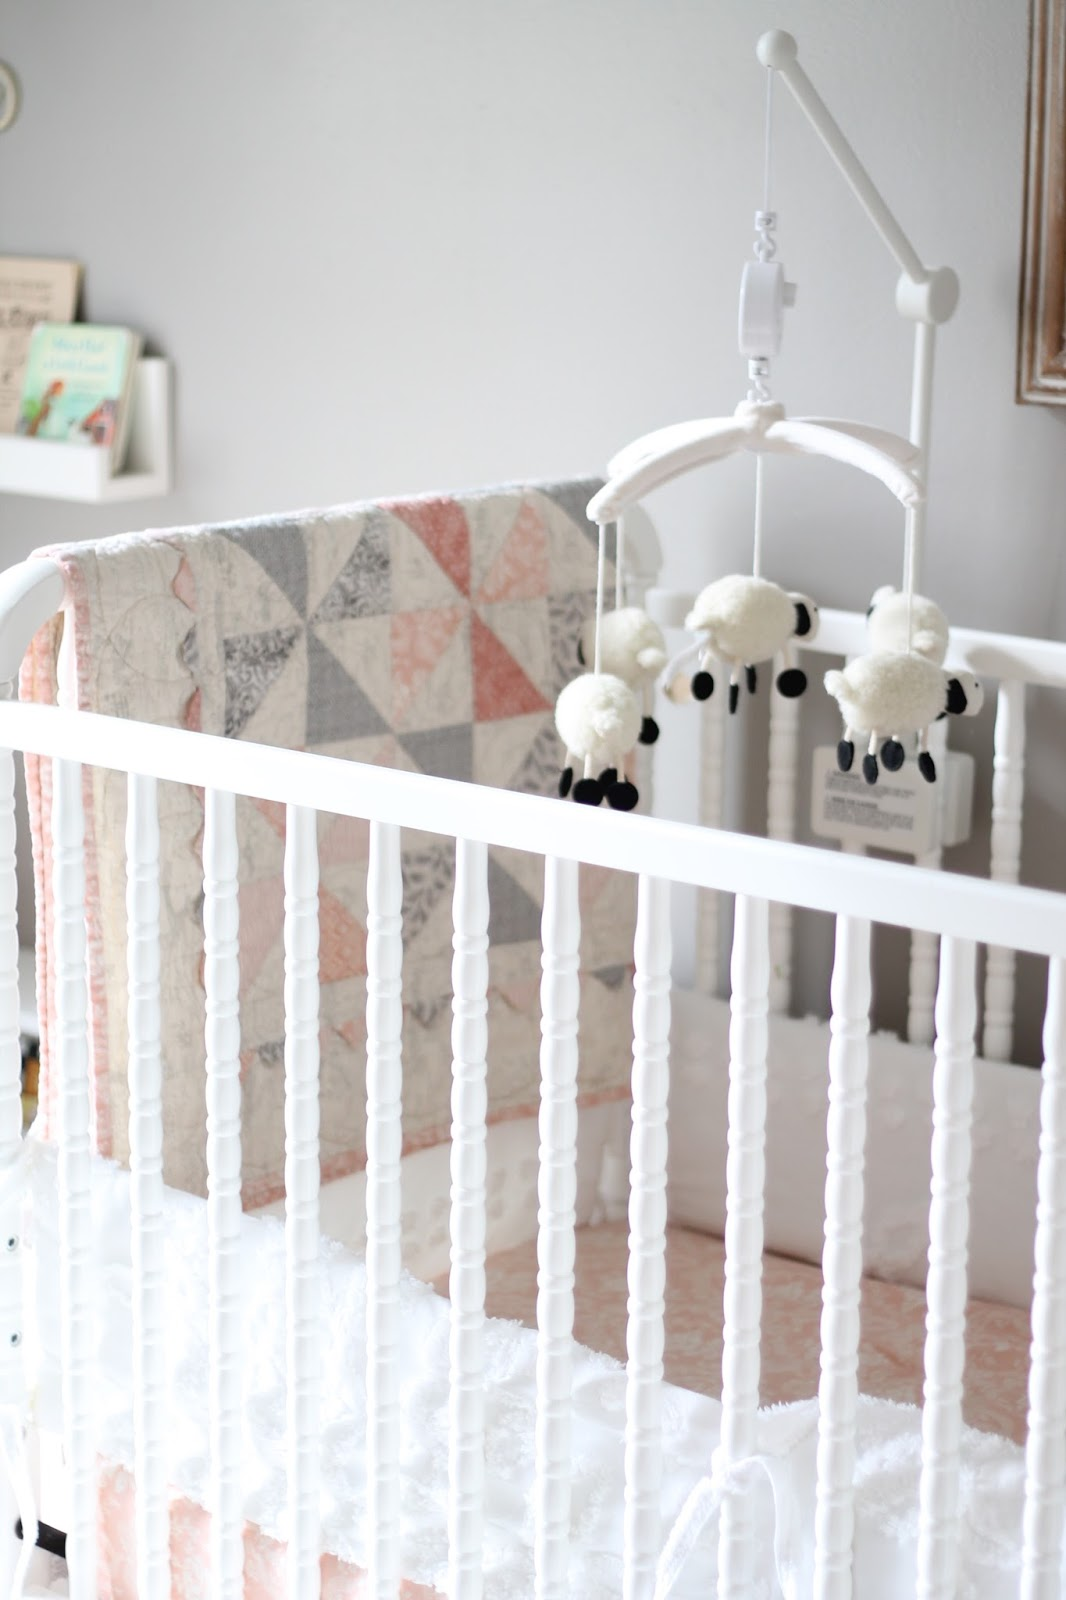 She Did Such A Great Job And I Am So Excited To Share Lauren S Peach Gray White Lamb Themed Nursery With You Today